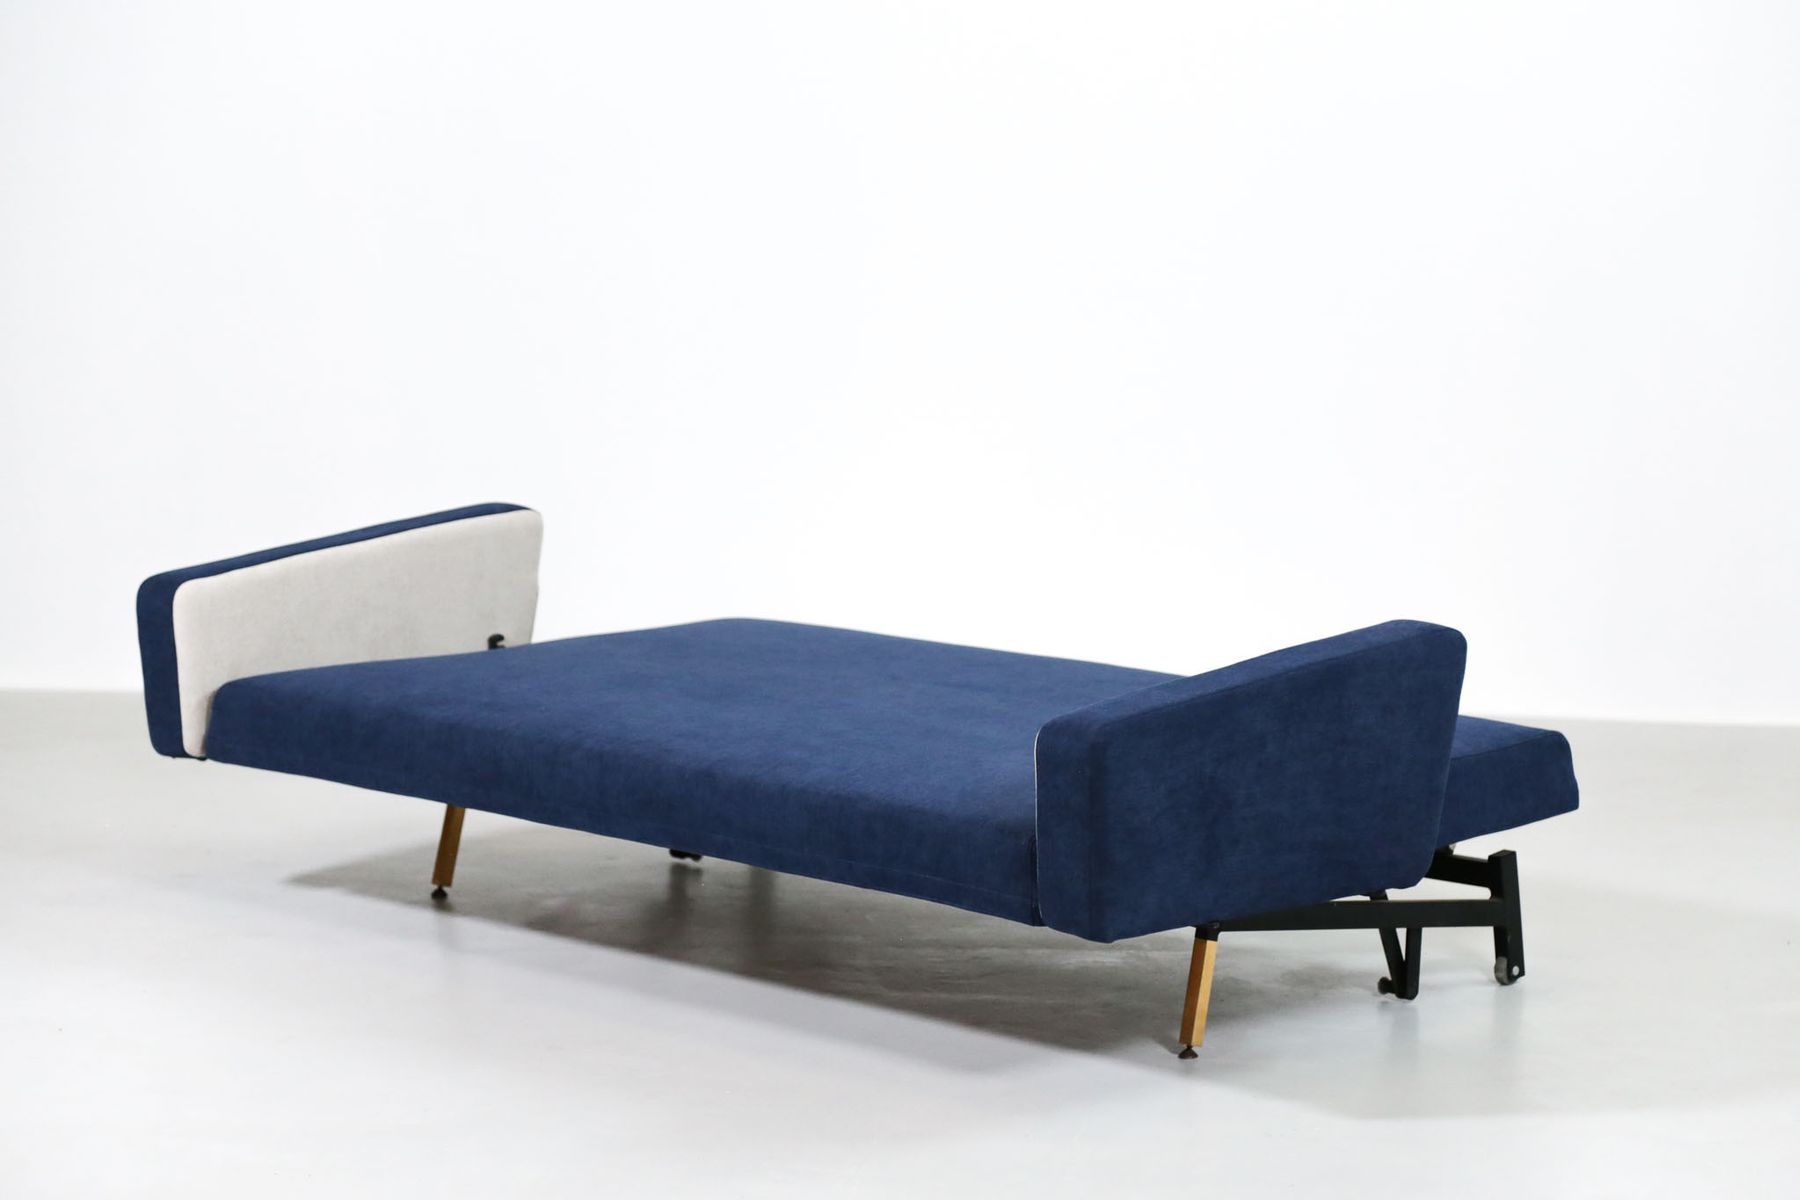 Vintage French Sofa Bed By Pierre Guariche For Airborne 9 3 617 00 Price Per Piece